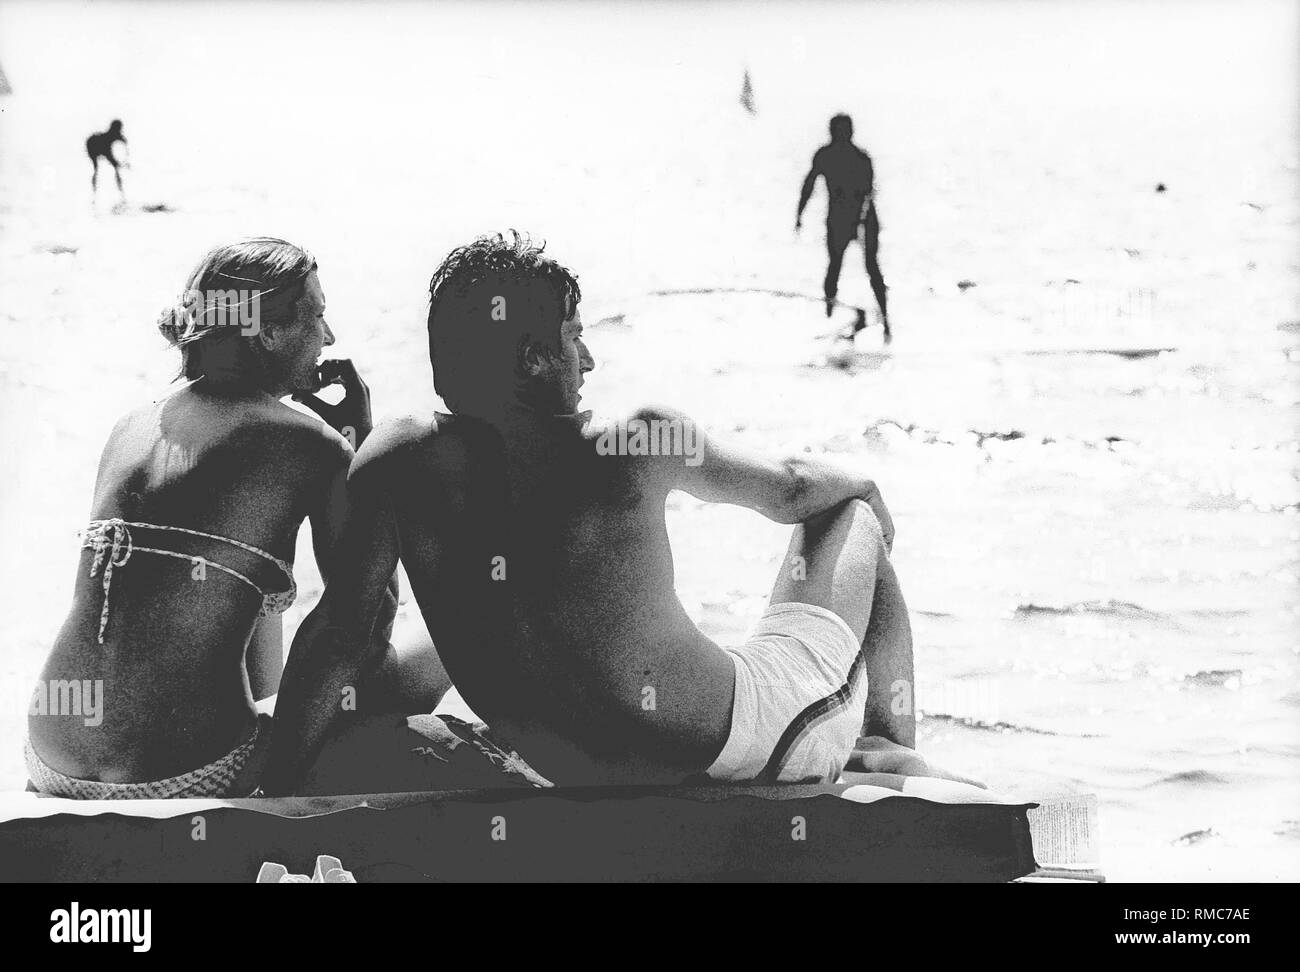 A man in swimming trunks and a woman in bikini are looking interested at surfers on the lake. - Stock Image